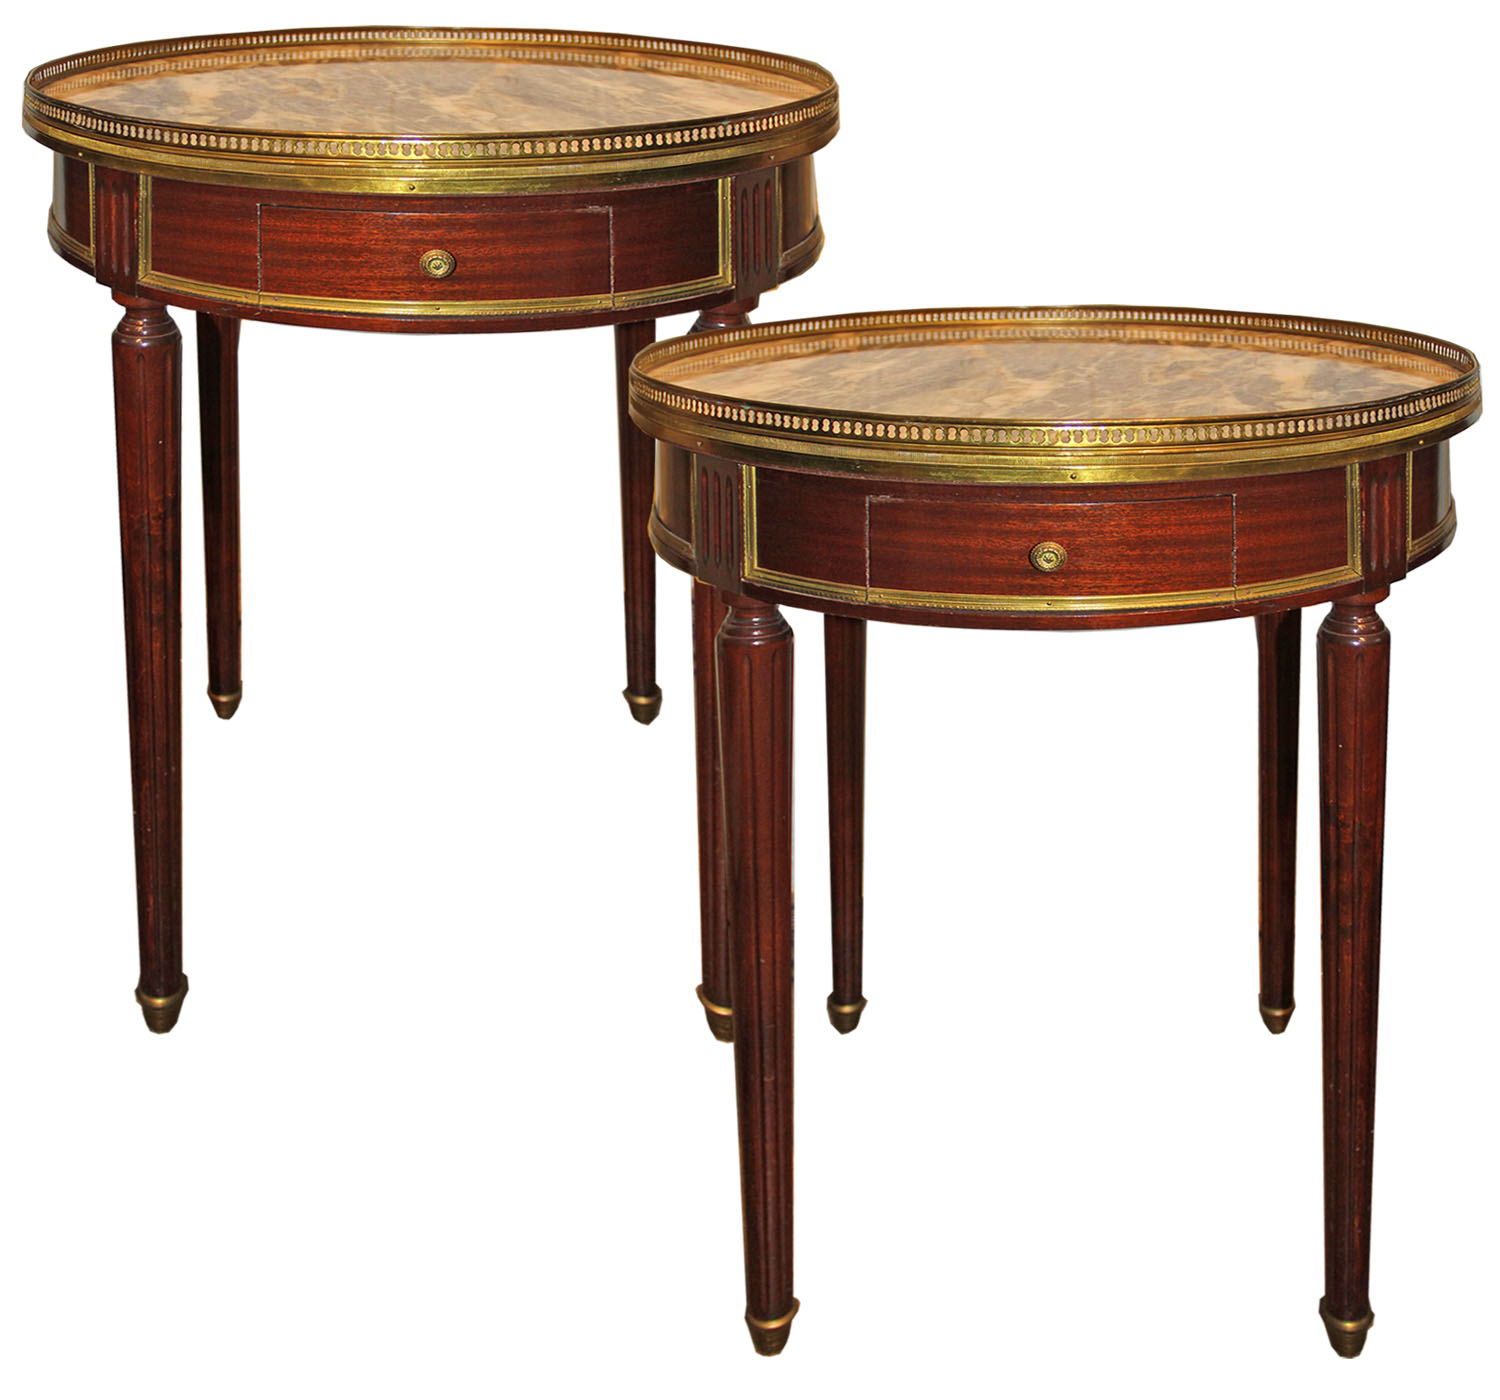 A Pair of 19th Century French Mahogany Bouillotte Tables No. 4477